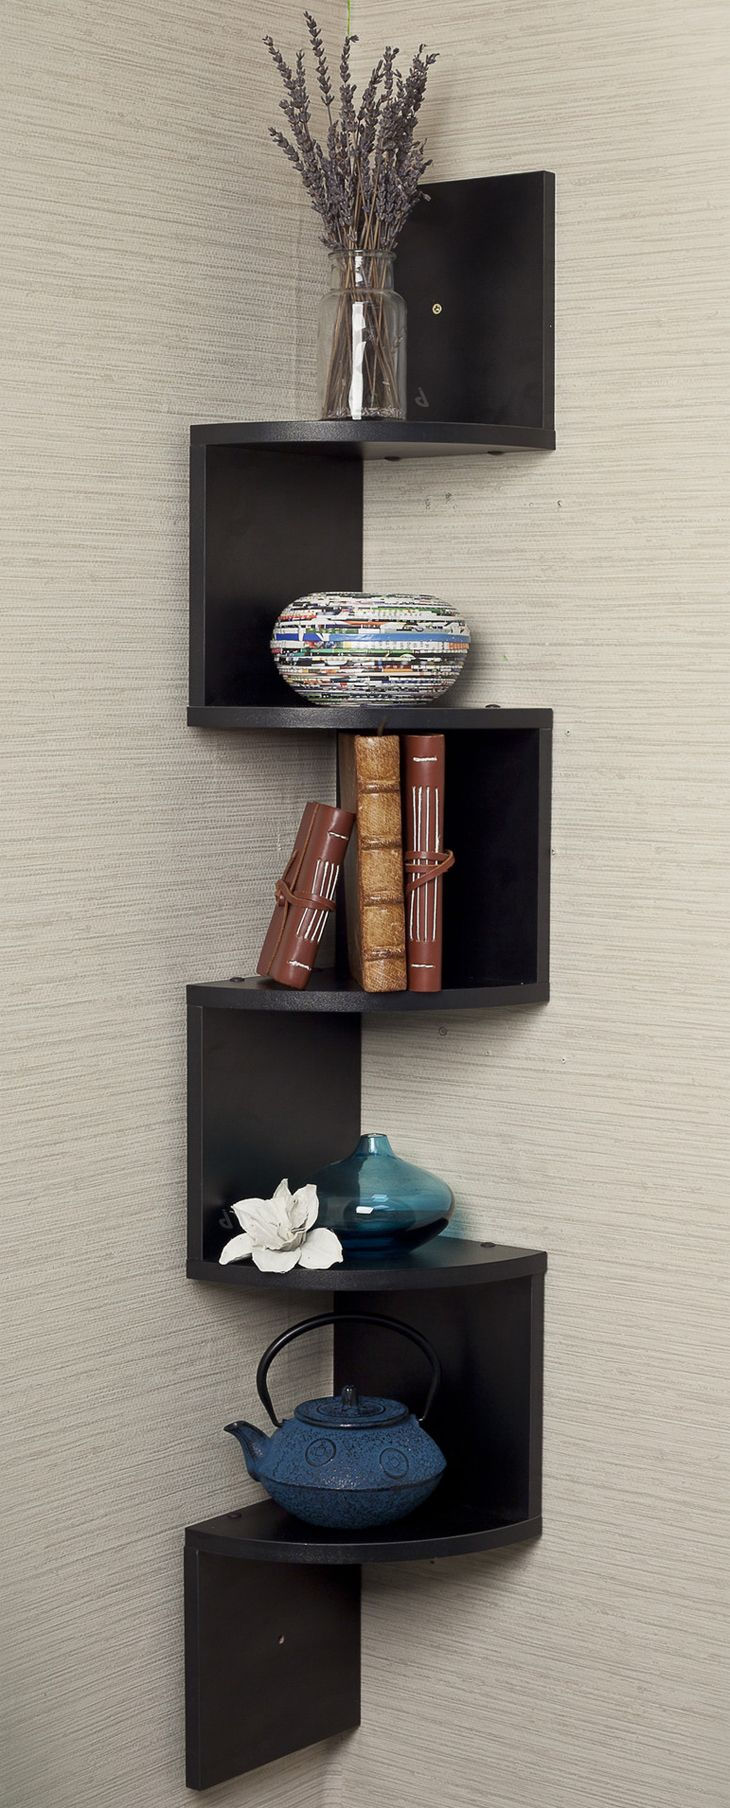 Black Corner Zig Zag Wall Shelf Clever Need Corner Wall Shelves Wall Mounted Shelves Large Corner Shelf